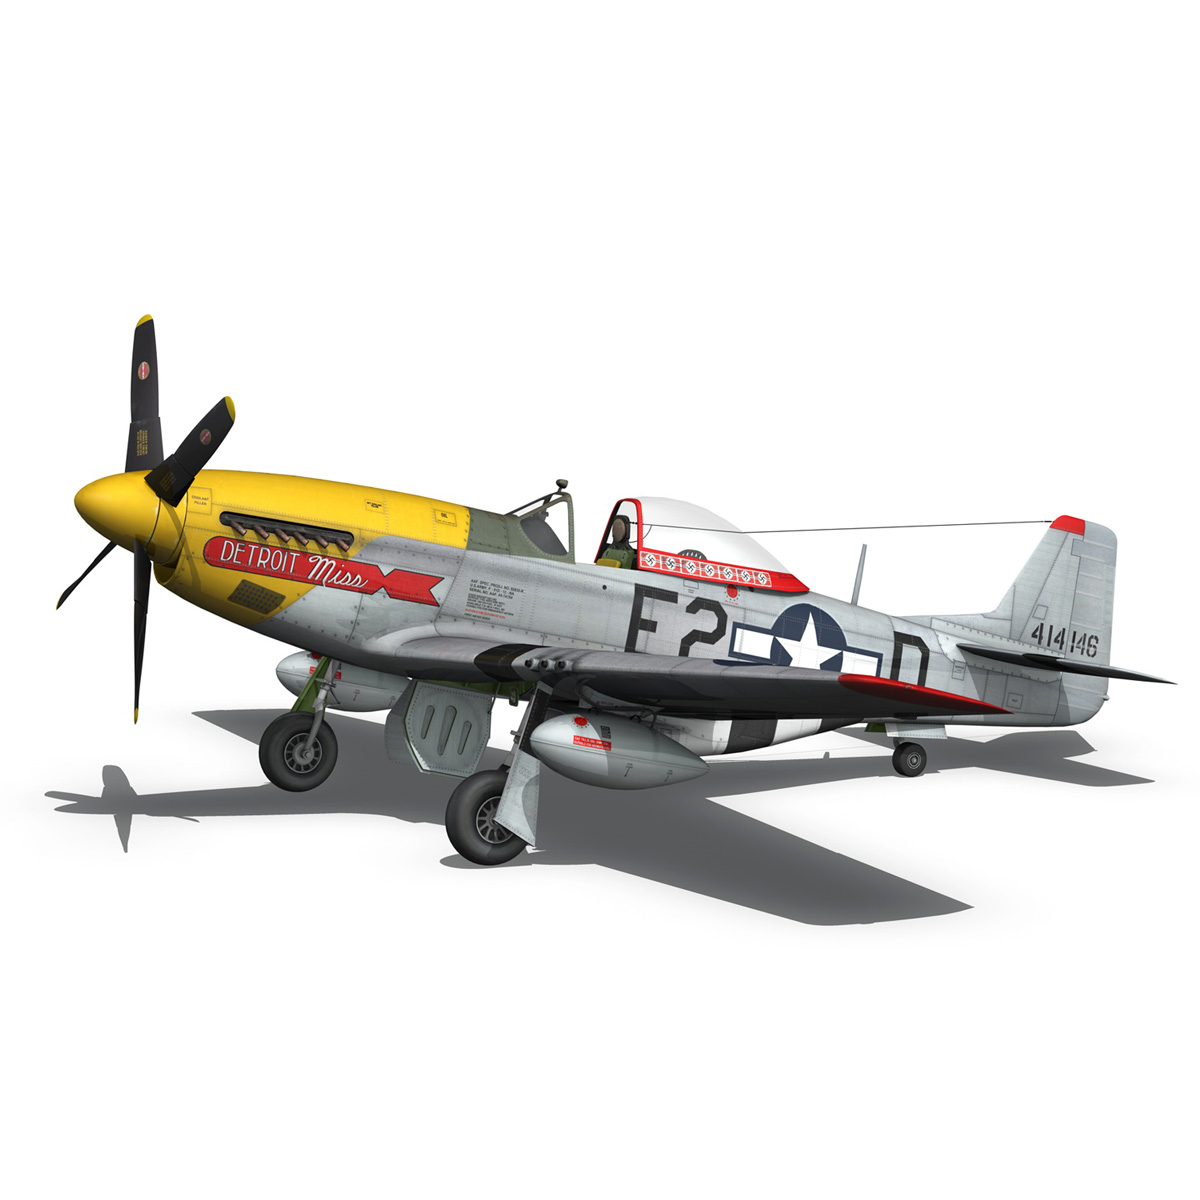 north american p-51d – mustang – detroit miss 3d model 3ds fbx c4d lwo obj 267601